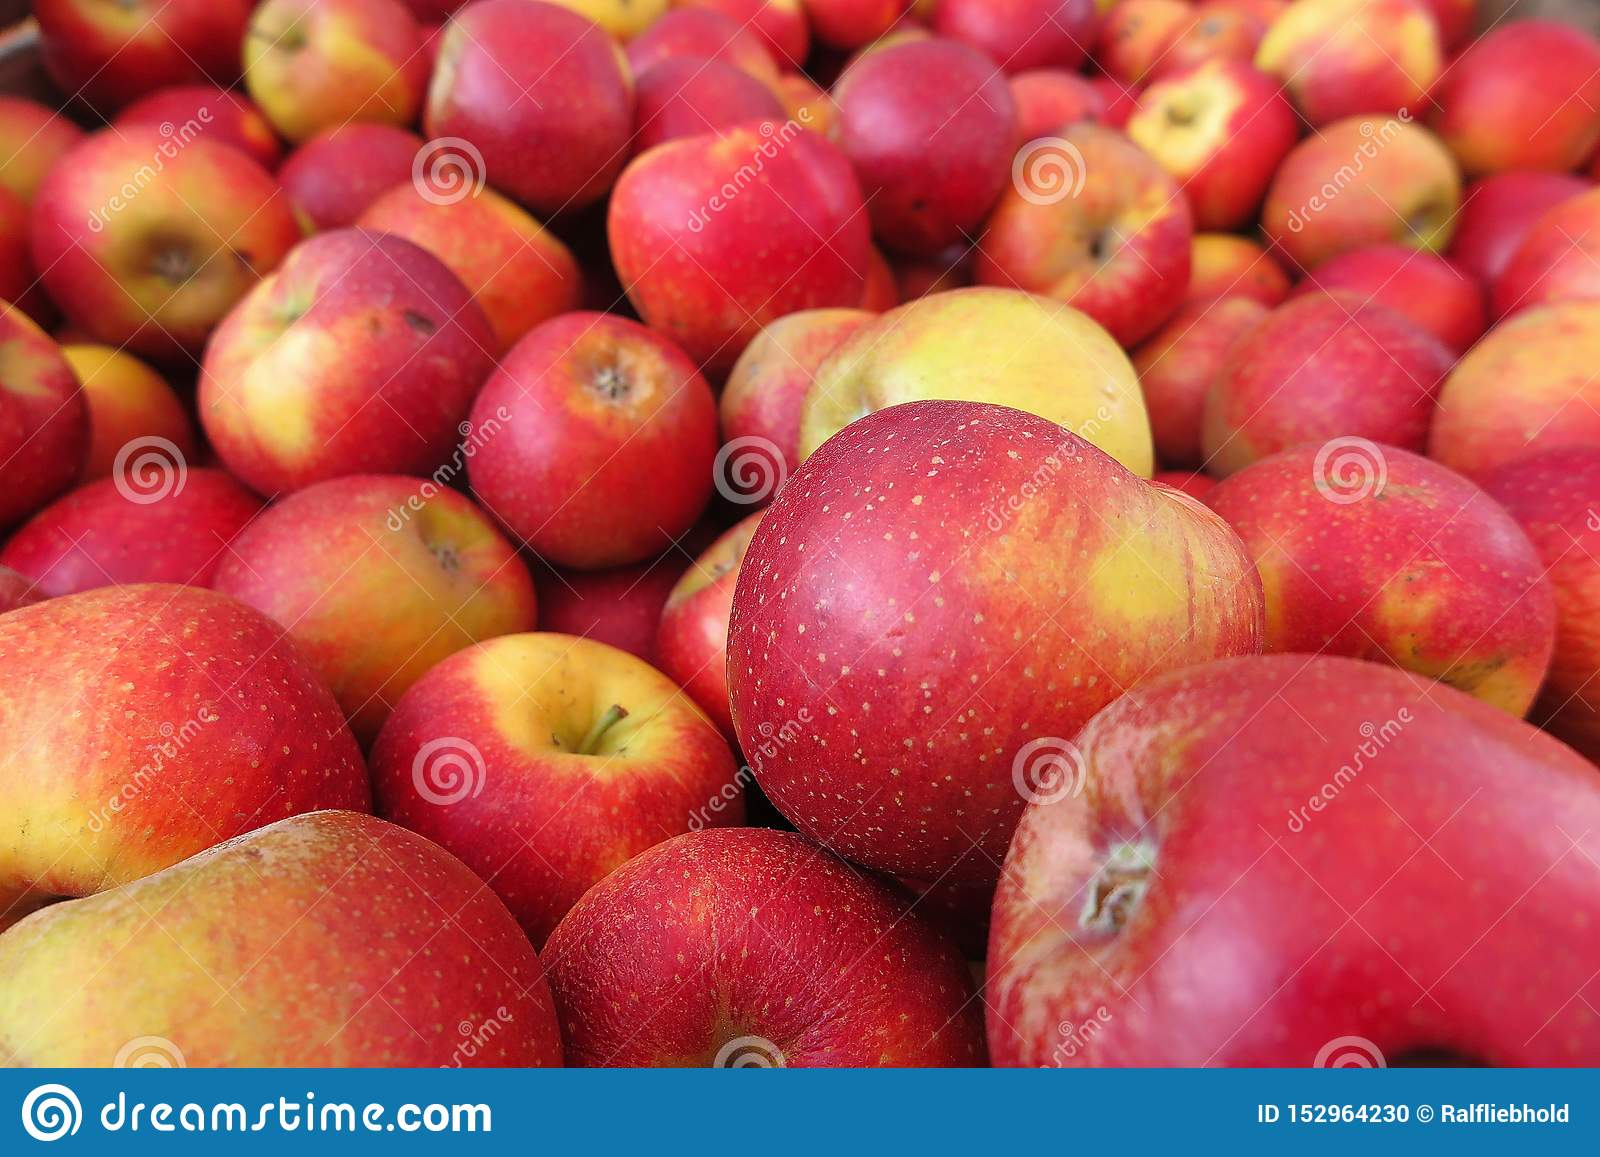 Full frame close up of pile red yellow apples wellant